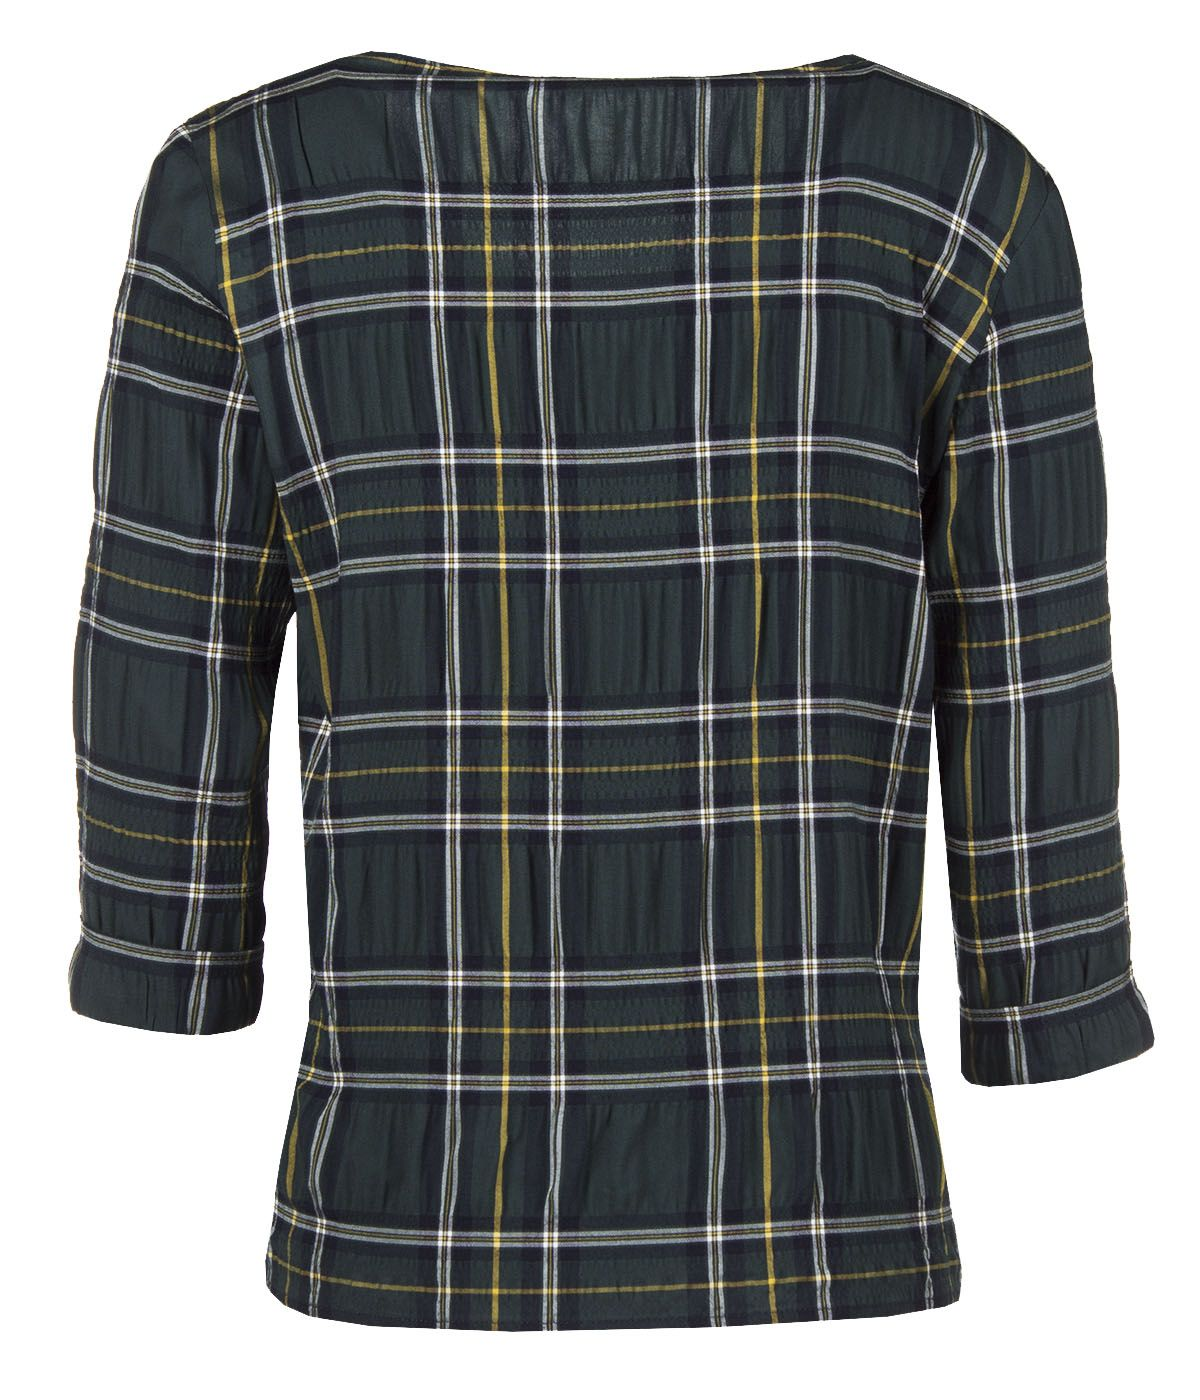 CHECKED BLOUSE FROM VISCOSE WITH ¾ SLEEVES AND TIED DETAIL 1